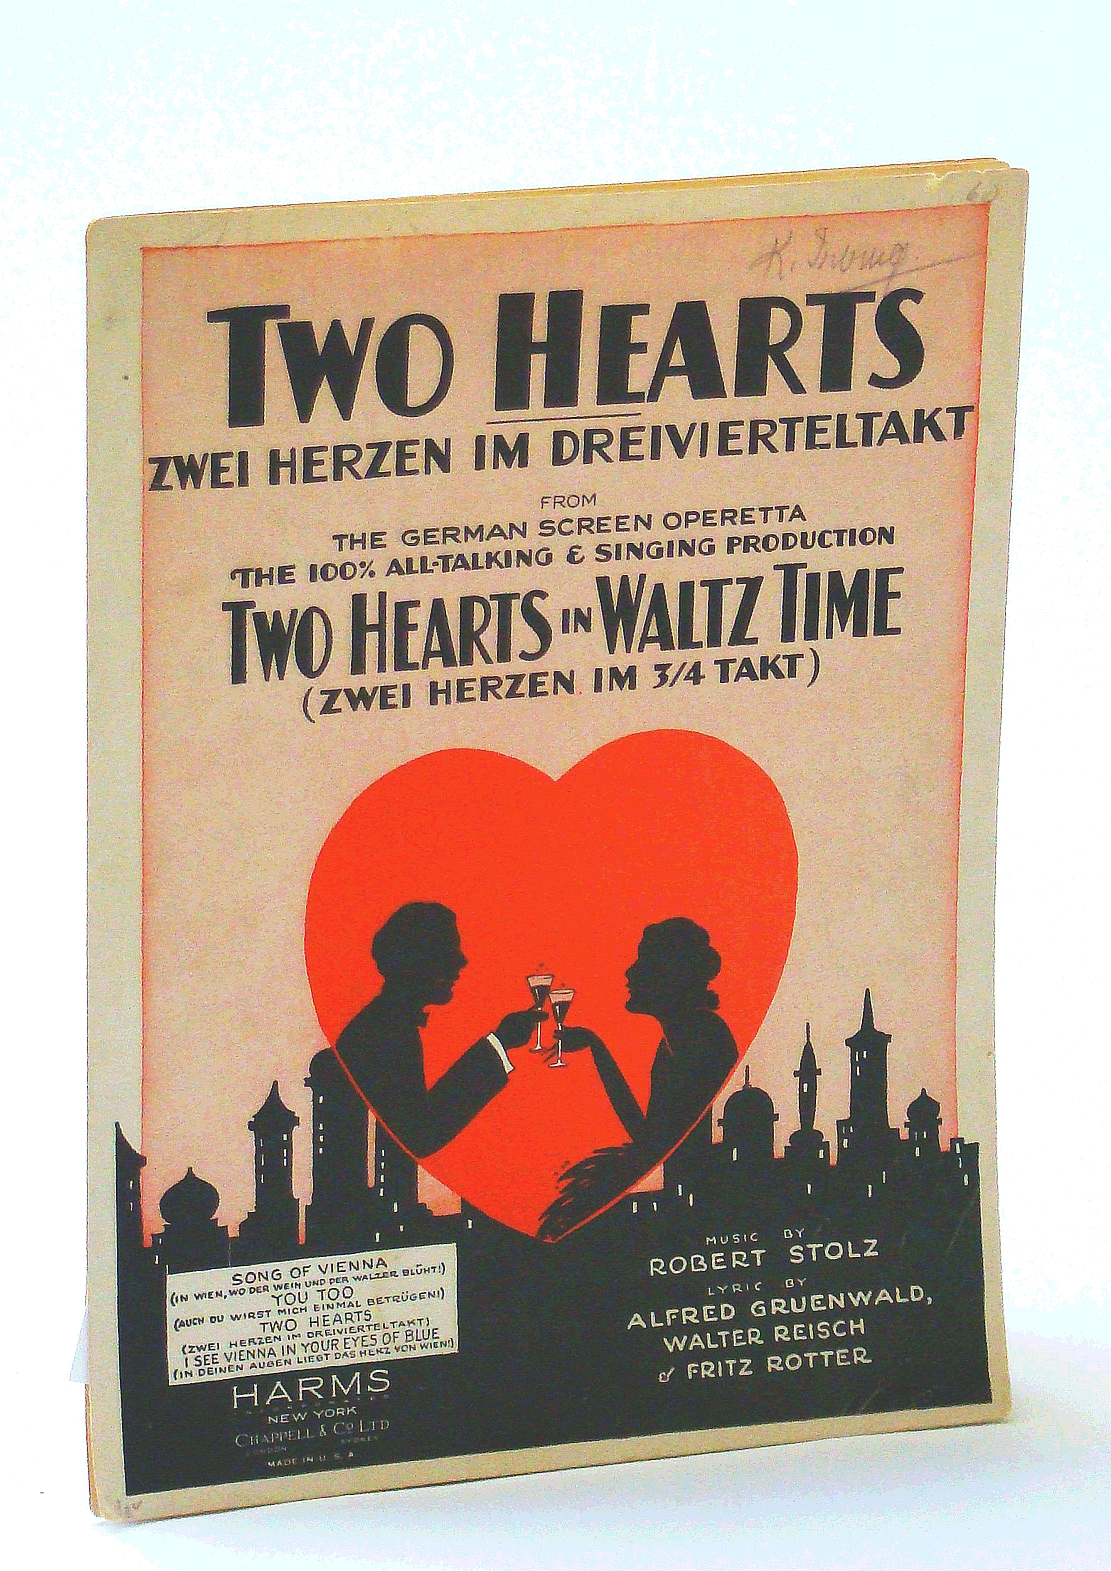 Image for TWO HEARTS (ZWEI HERZEN IN 3/4 TAKT) (Robert Stolz SHEET MUSIC) 1930 from the German screen operetta TWO HEARTS IN WALTZ TIME, Excellent condition